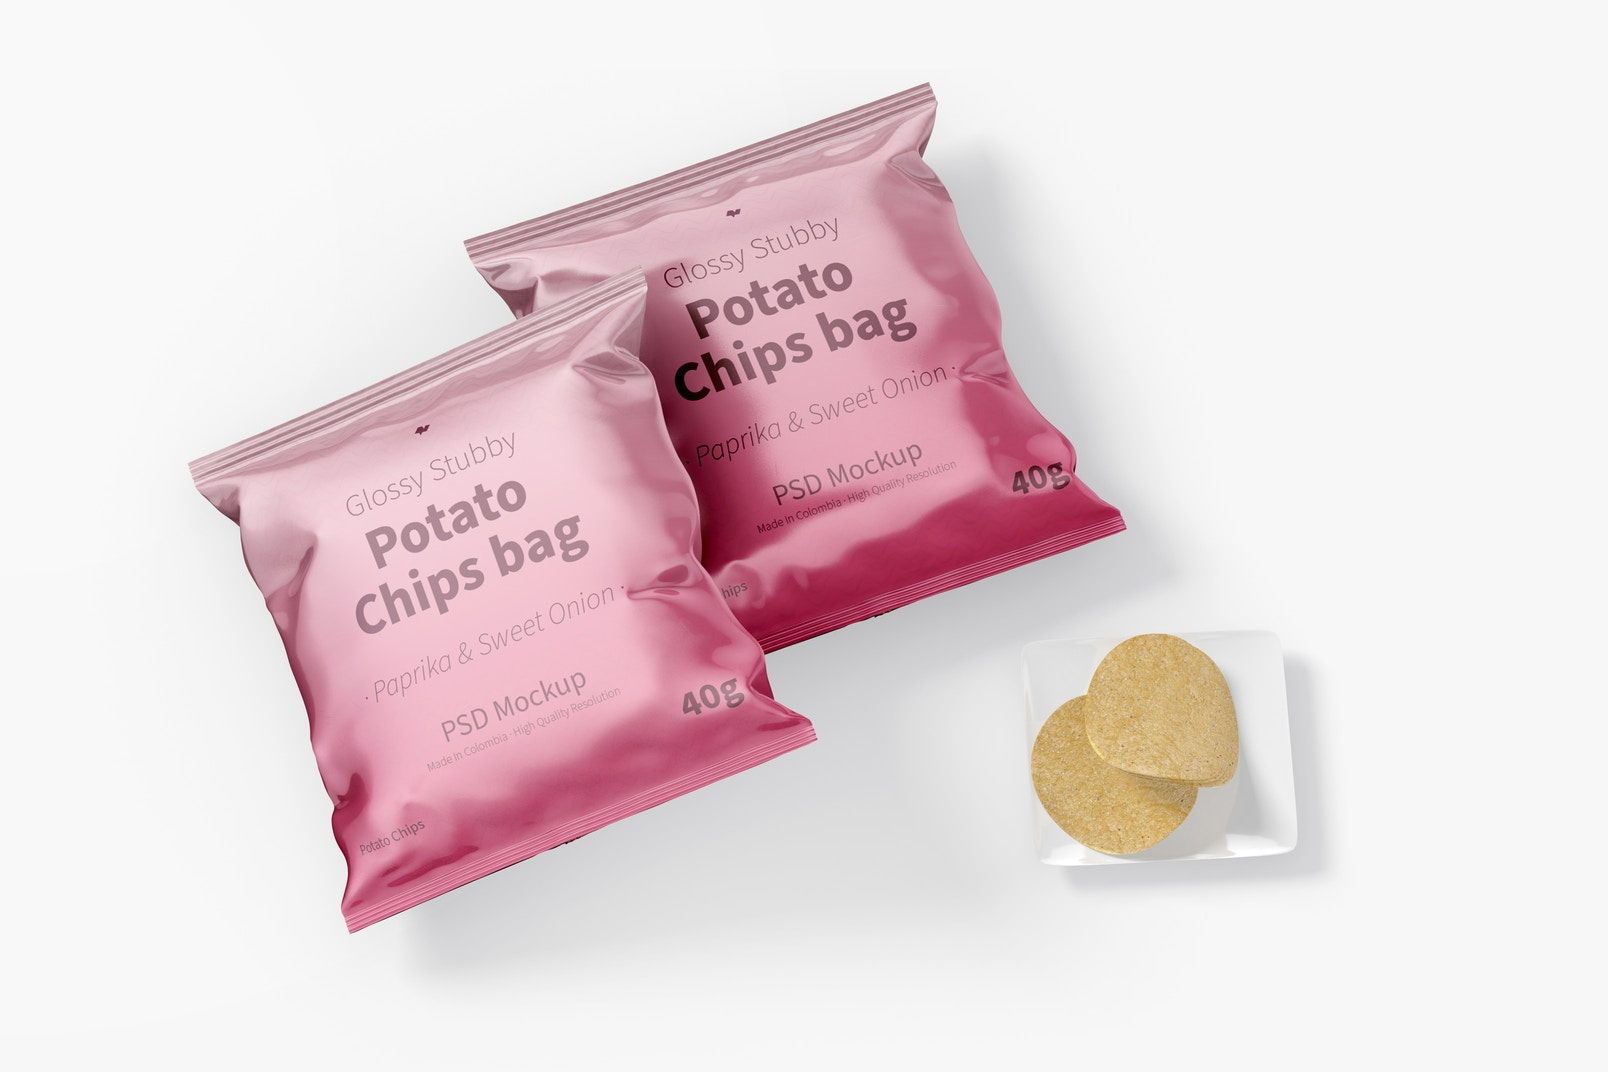 Glossy Stubby Chips Bag Mockup, Top View